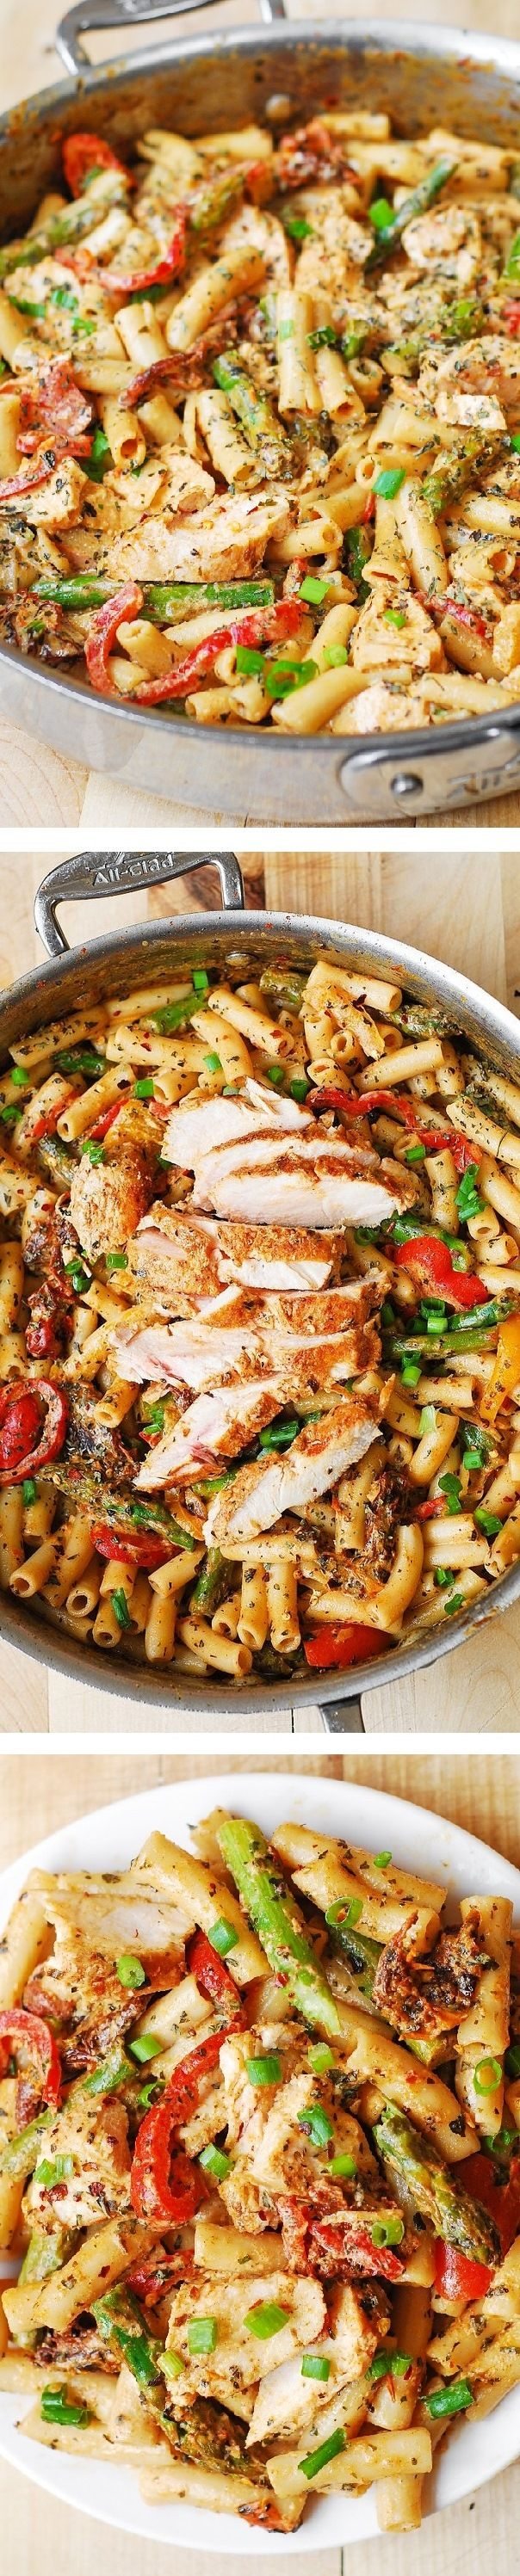 Chicken Alfredo Pasta with Bell Peppers, Asparagus, in a Creamy Sun-Dried Tomato Sauce.